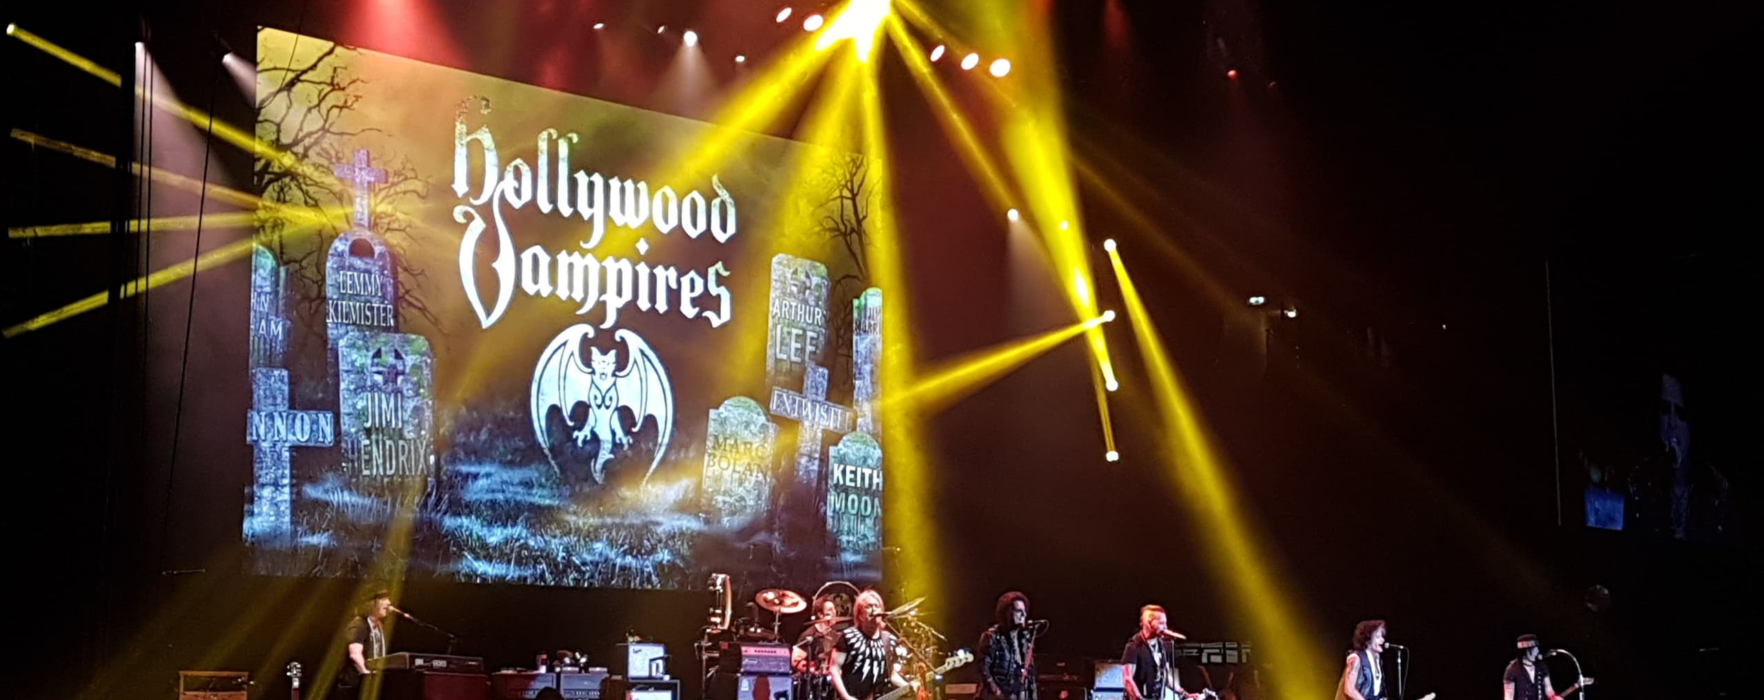 Hollywood Vampires sets the stakes high for Manchester 'Blood Suckers'